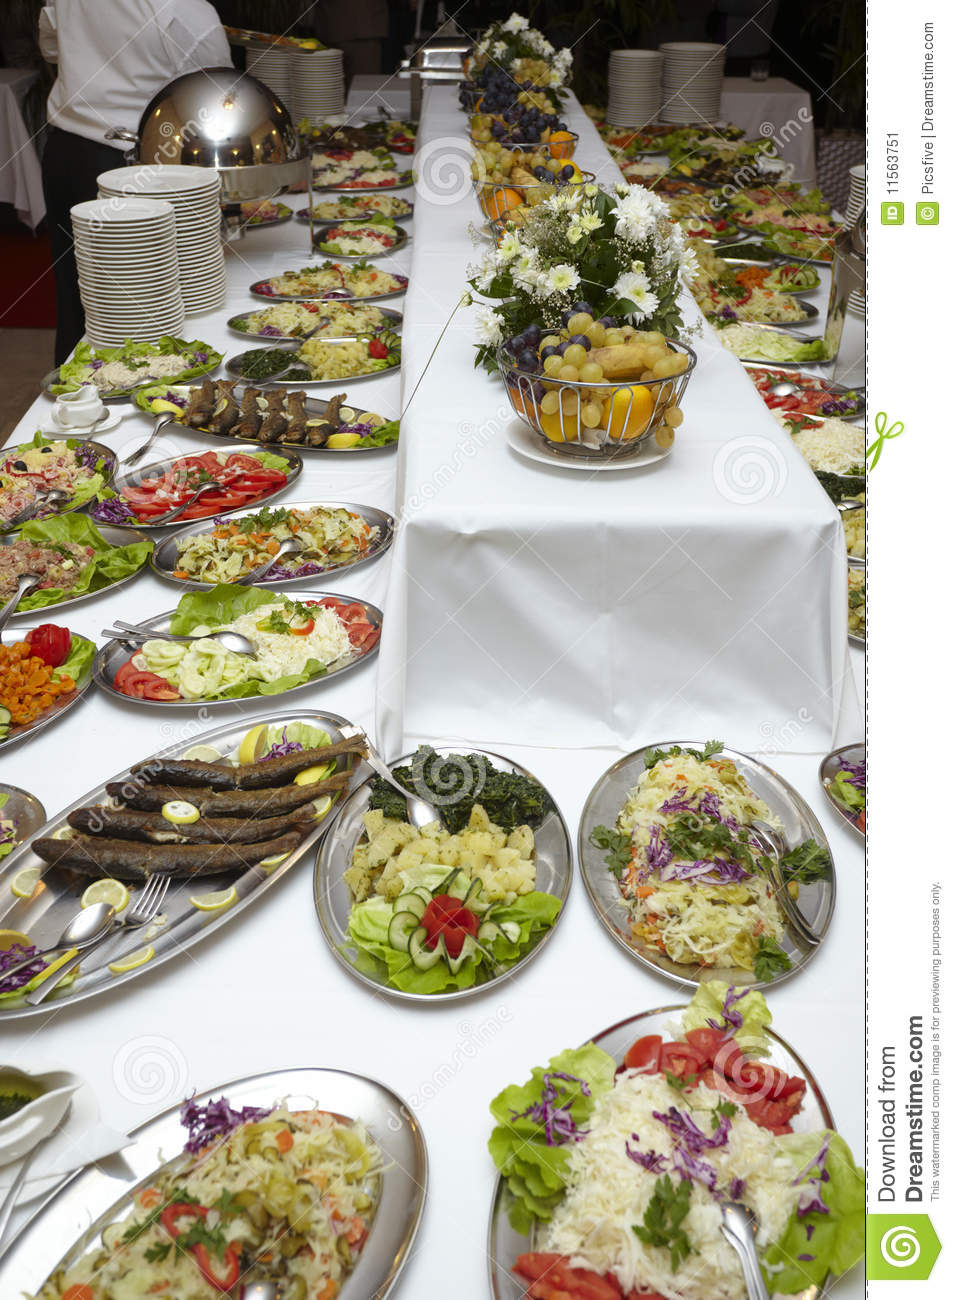 Catering food restaurant cuisine stock image image 11563751 for Ajays catering cuisine